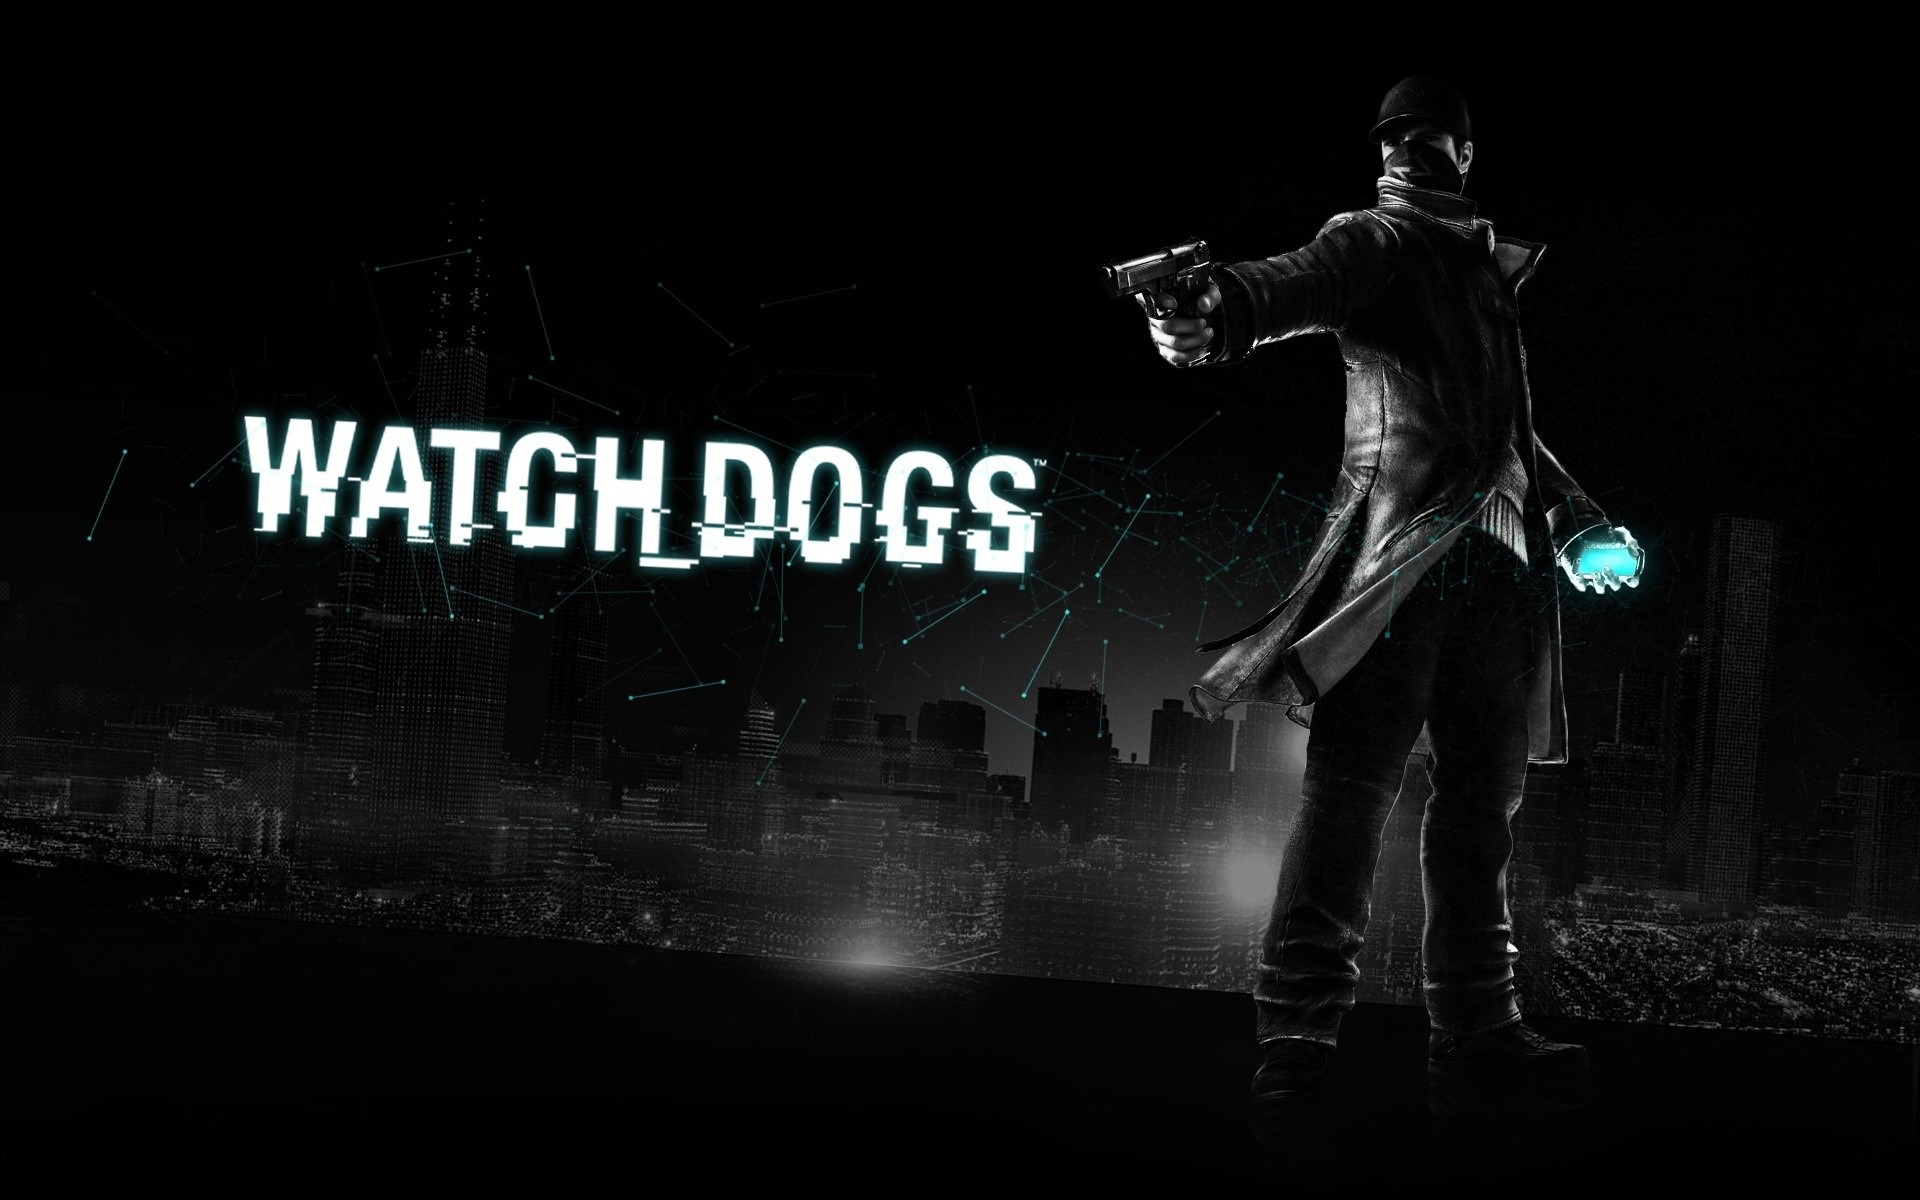 Fondo de pantalla de Aiden Pearce de Watch Dogs Imágenes